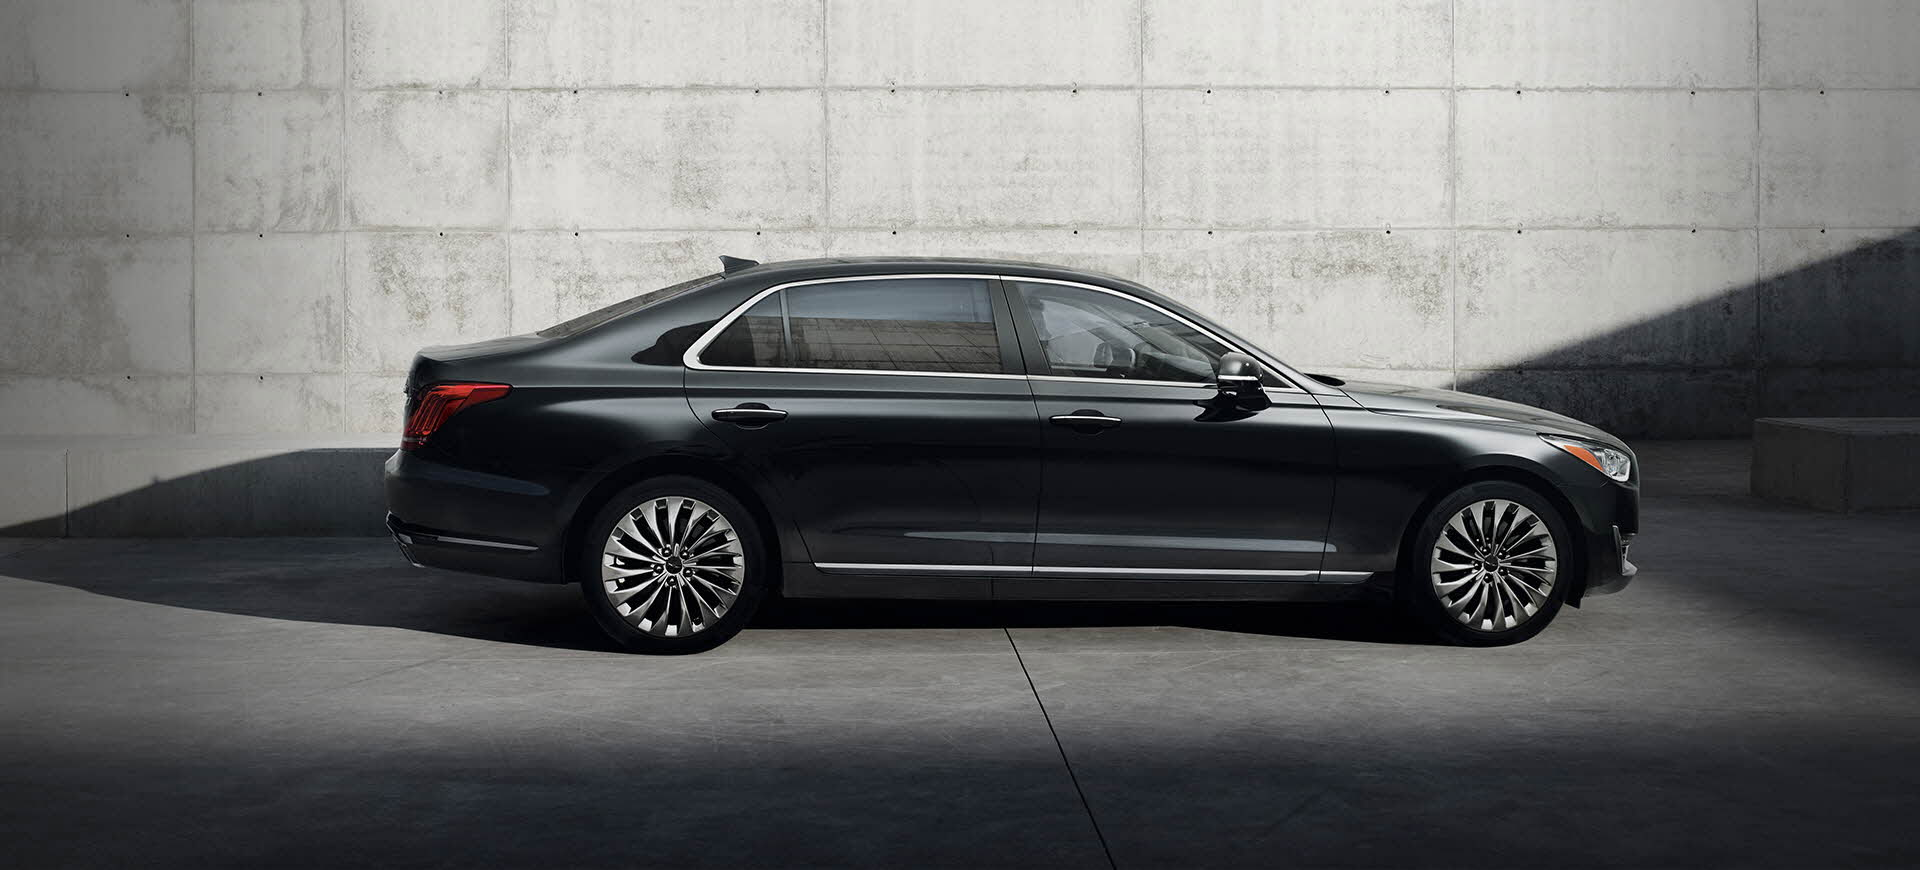 Hyundai's New Genesis G90 Sedan: Price, Specs, Design